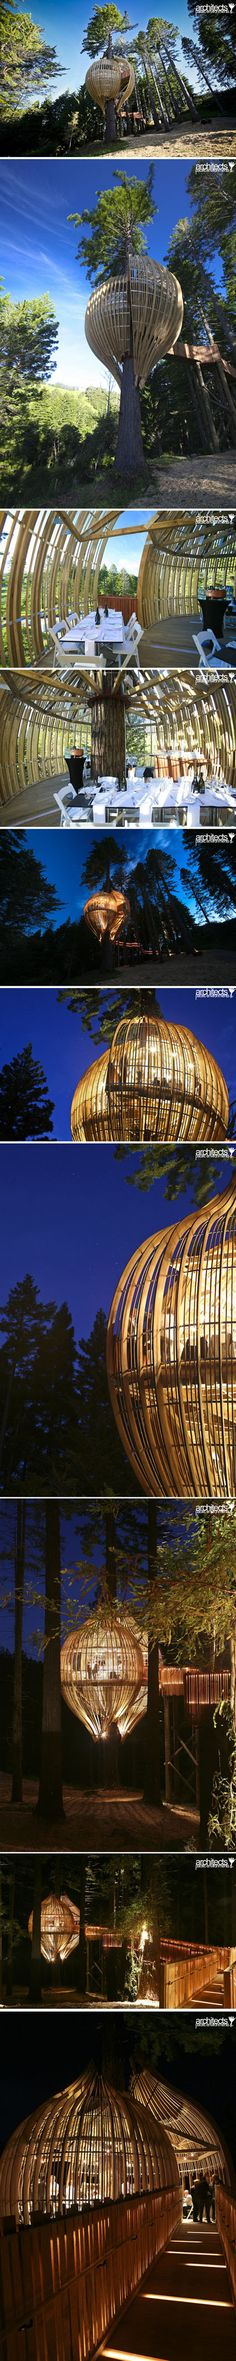 Yellow Treehouse Restaurant, New Zealand // designed by architects Peter Eising and Lucy Gauntlett from Pacific Environments Architects.